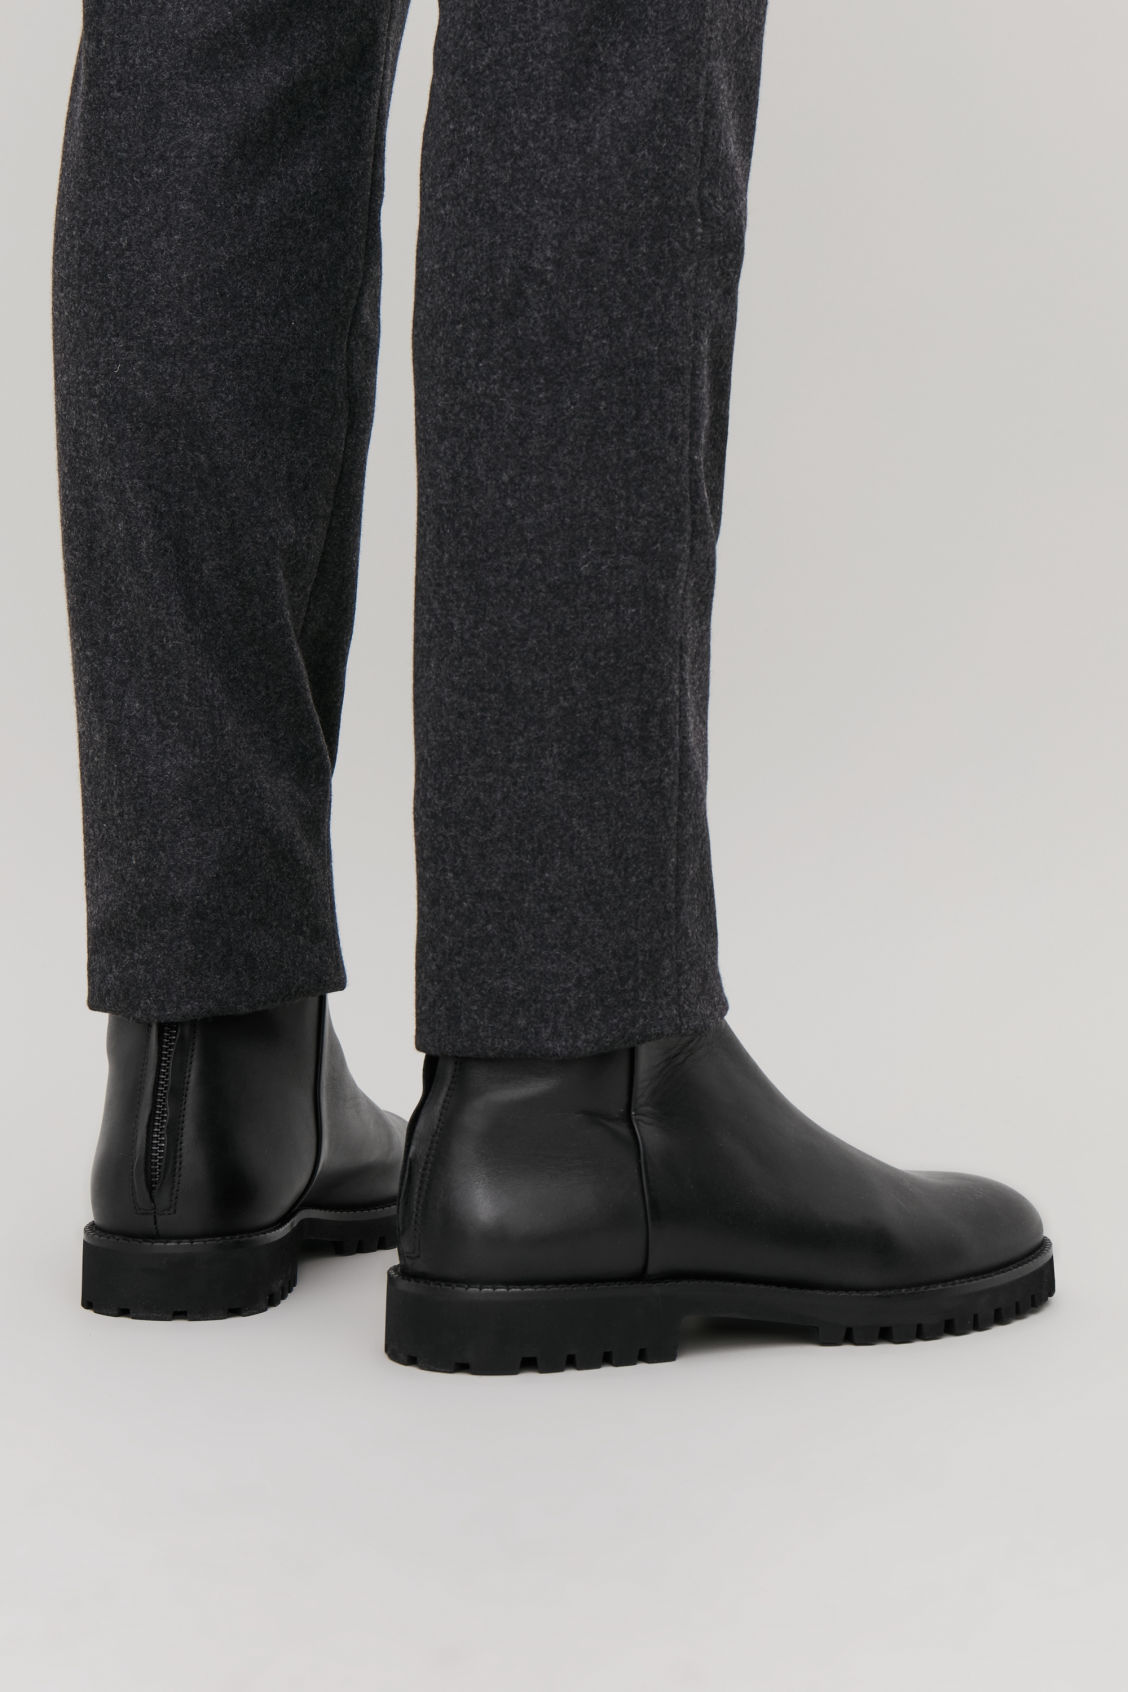 Detailed image of Cos chunky-sole leather boots in black